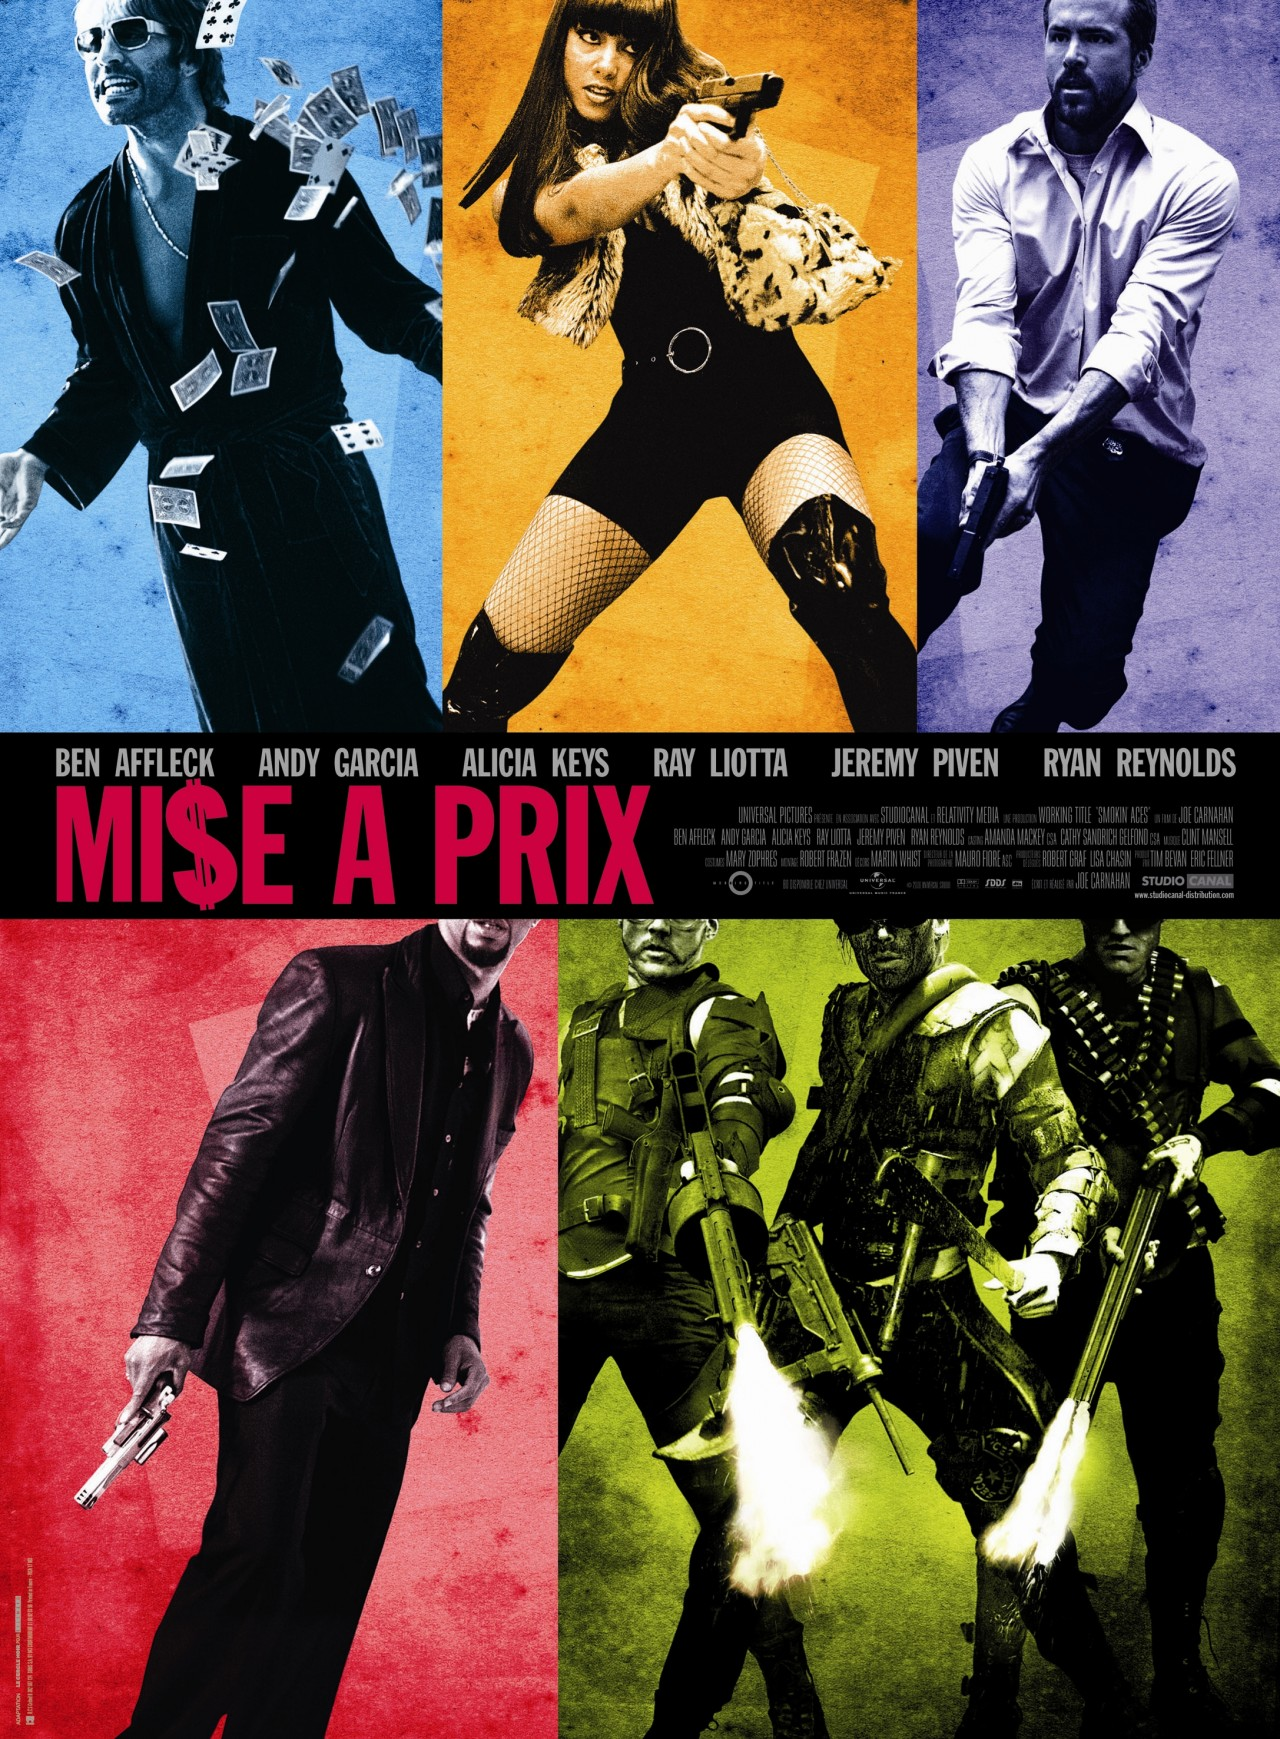 Mi$e à prix [DVDRIP][FRENCH][MULTI]